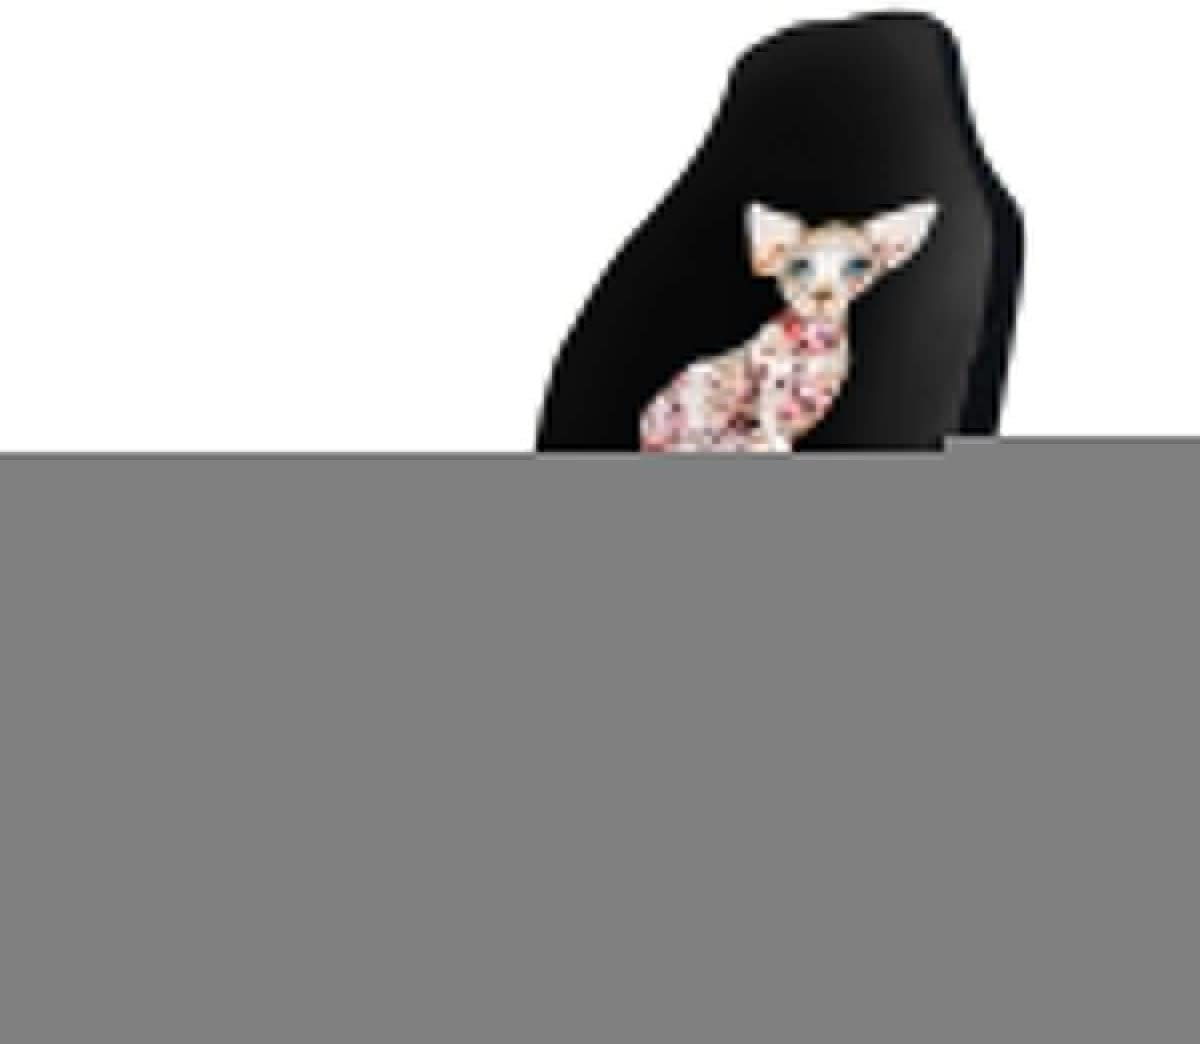 POI78 Sphynx Cat Fascinating Sale price Fashion Seat High quality Fu Pattern Auto Covers